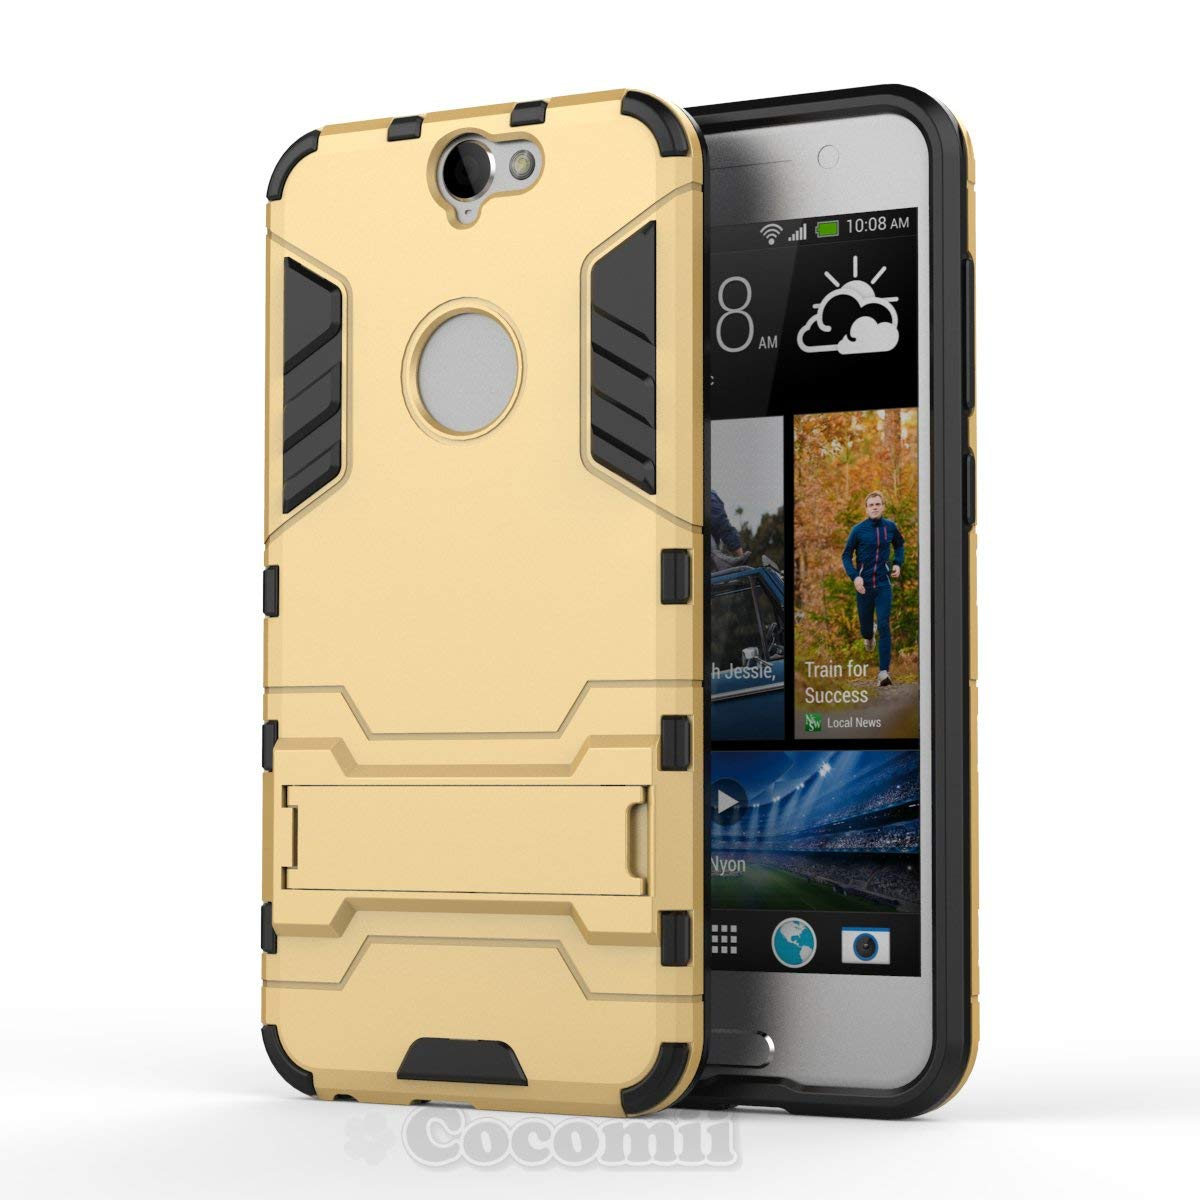 online store 50920 81deb Cocomii Iron Man Armor HTC One A9 Case New [Heavy Duty] Premium Tactical  Grip Kickstand Shockproof Hard Bumper Shell [Military Defender] Full Body  ...